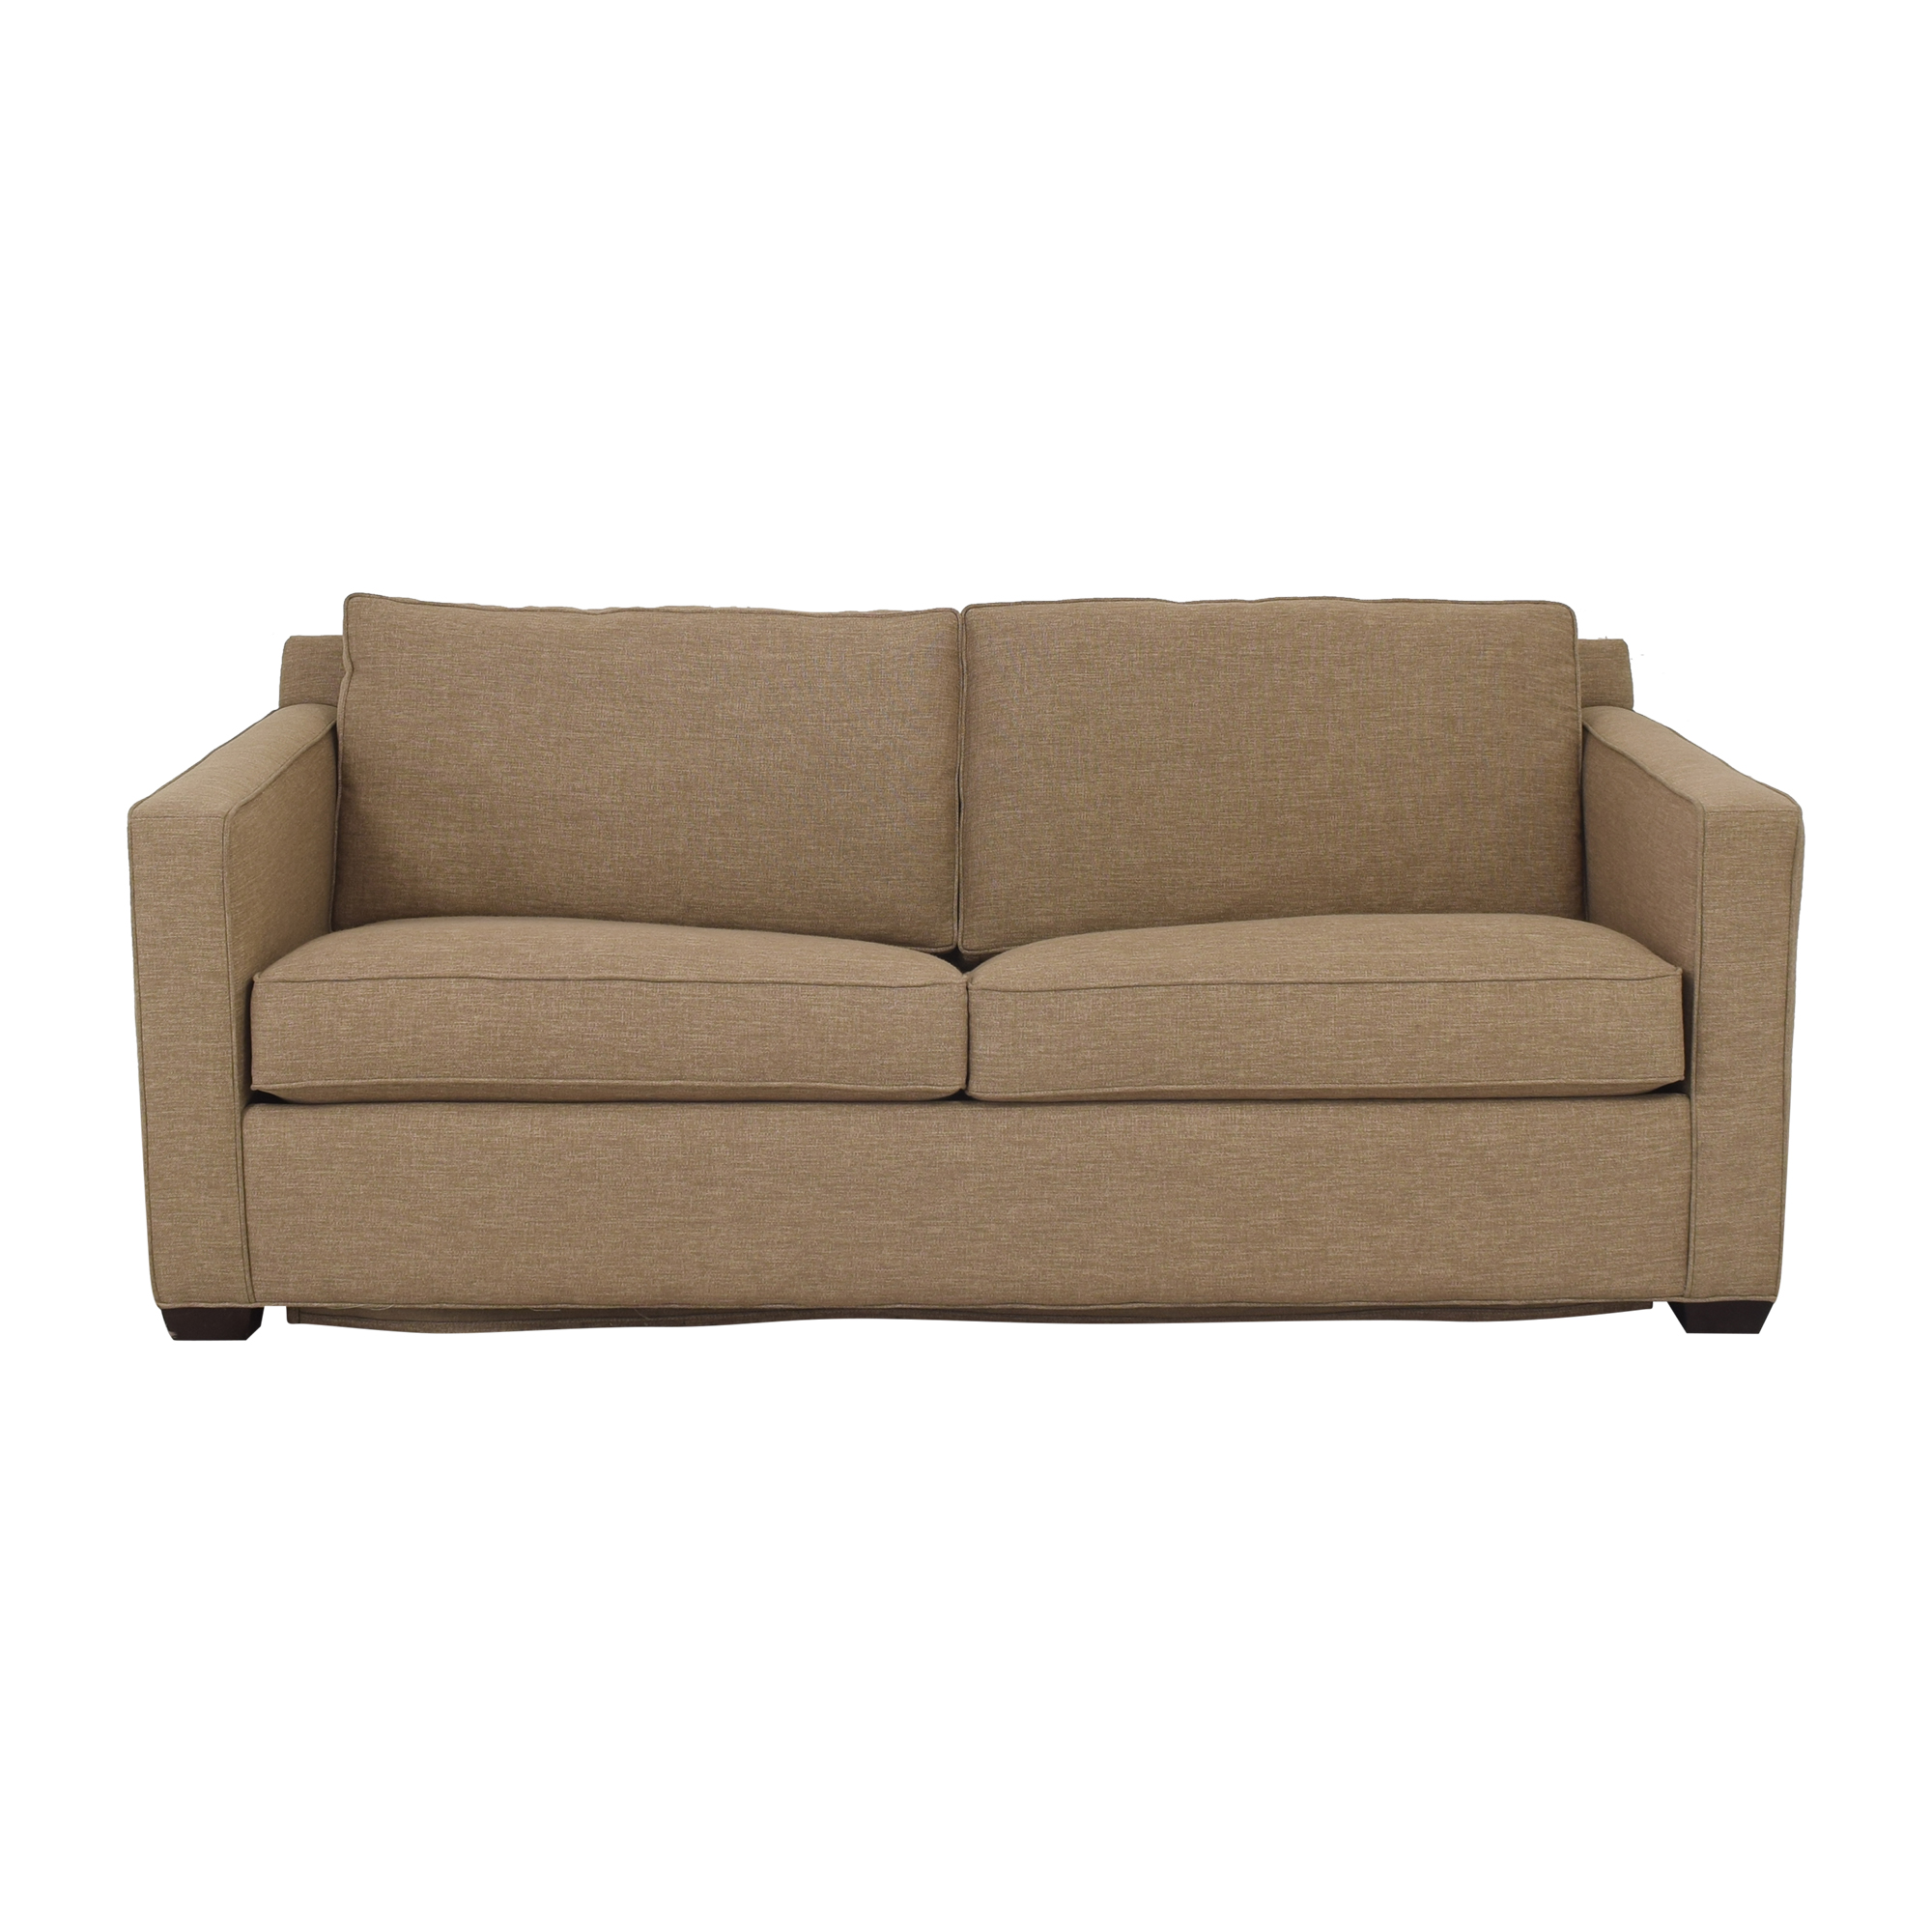 Crate & Barrel Crate & Barrel Modern Sleeper Sofa Sofas